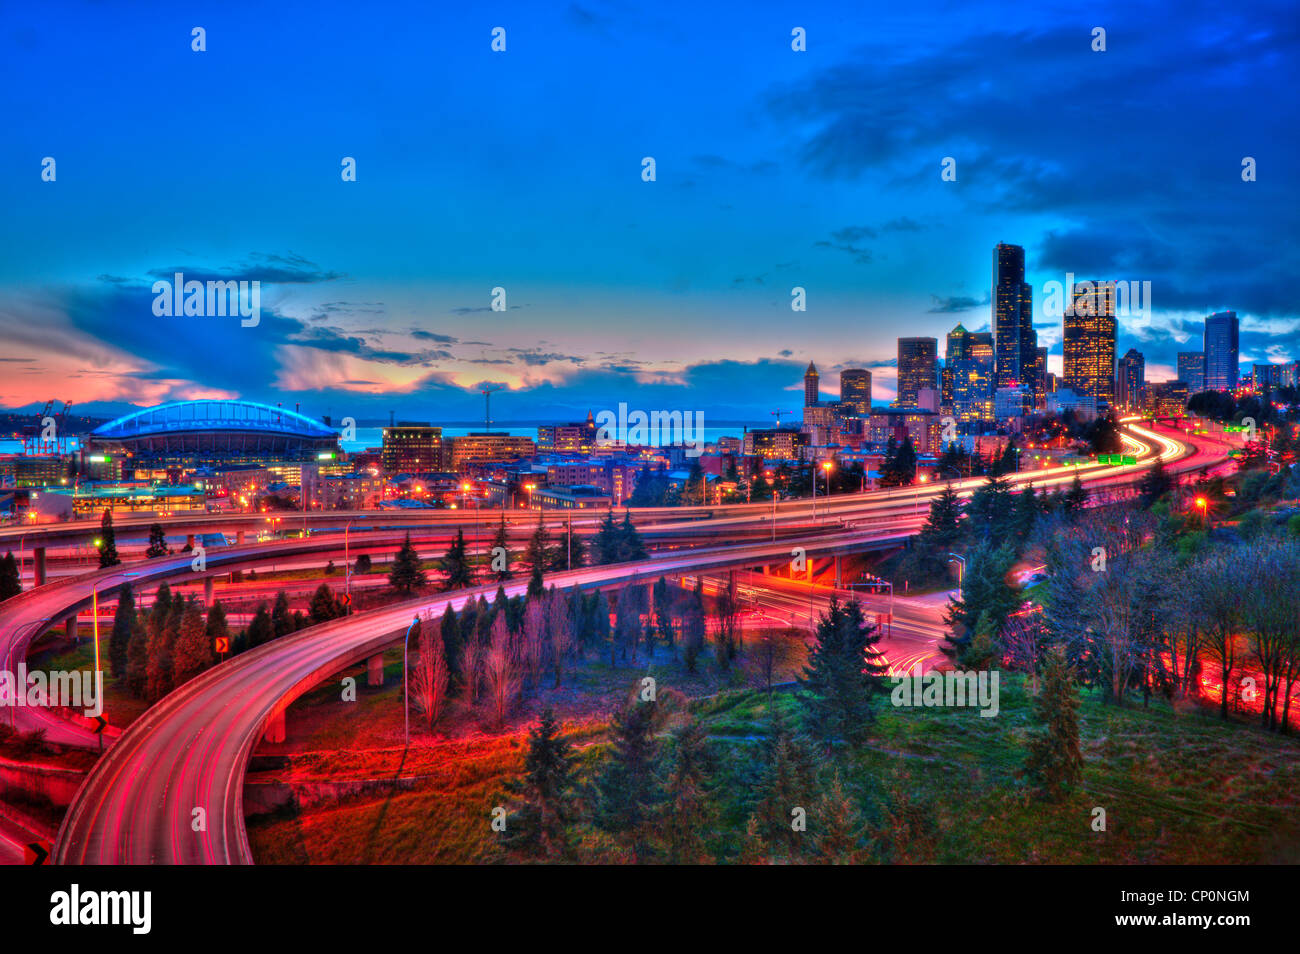 Il centro cittadino di Seattle e I-5 Freeway a I-90 interscambio, dal P. Jose Rizal ponte; Seattle, Washington. Immagini Stock